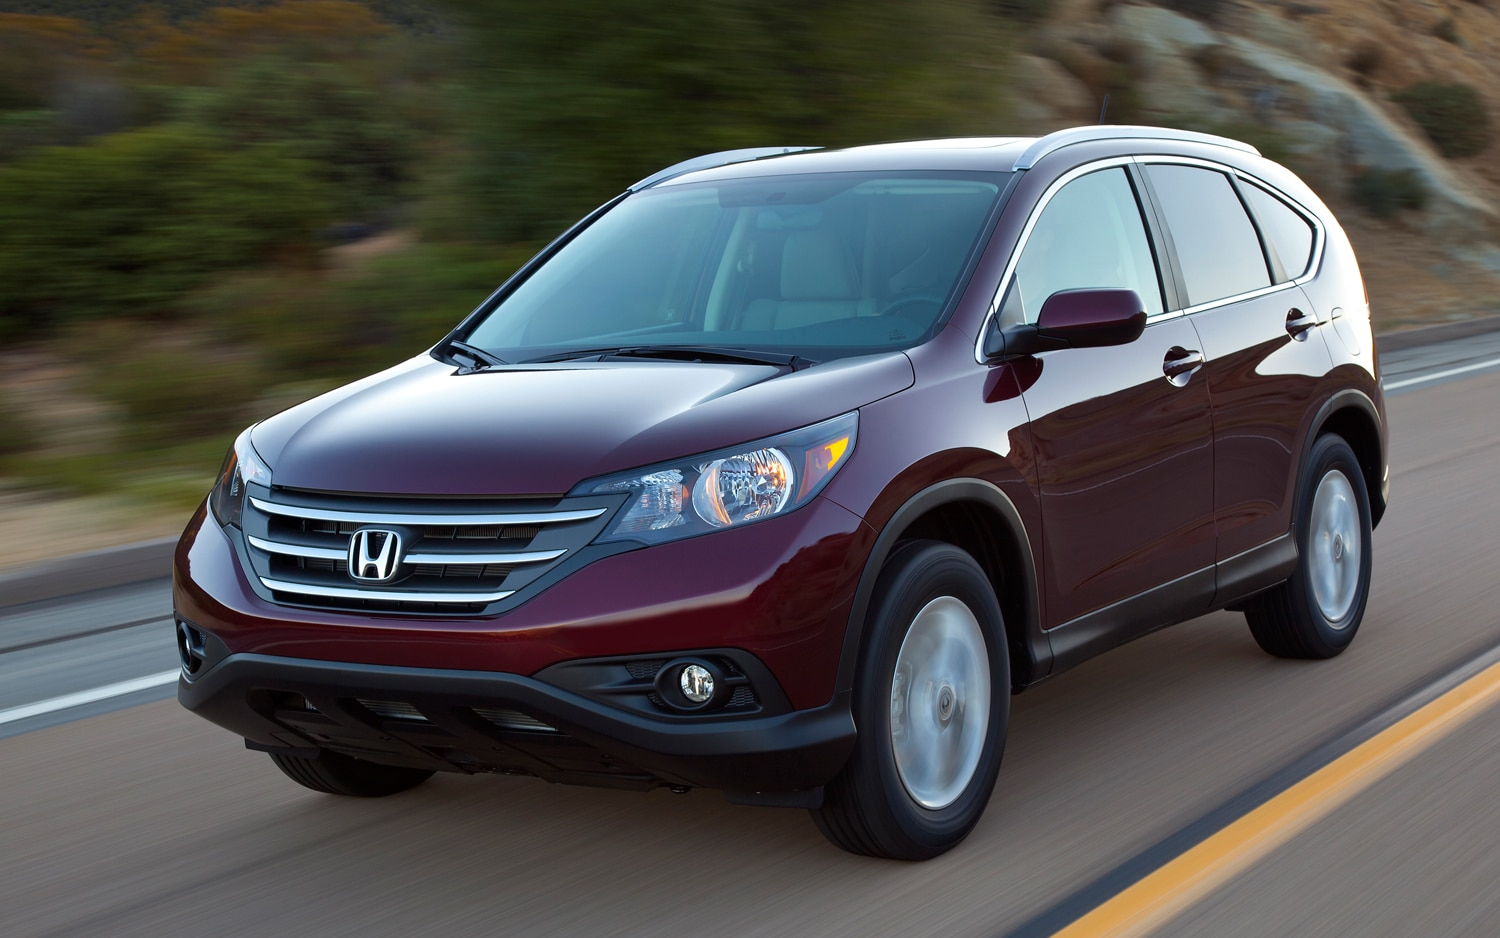 2012 honda cr v first drive automoblie magazine. Black Bedroom Furniture Sets. Home Design Ideas